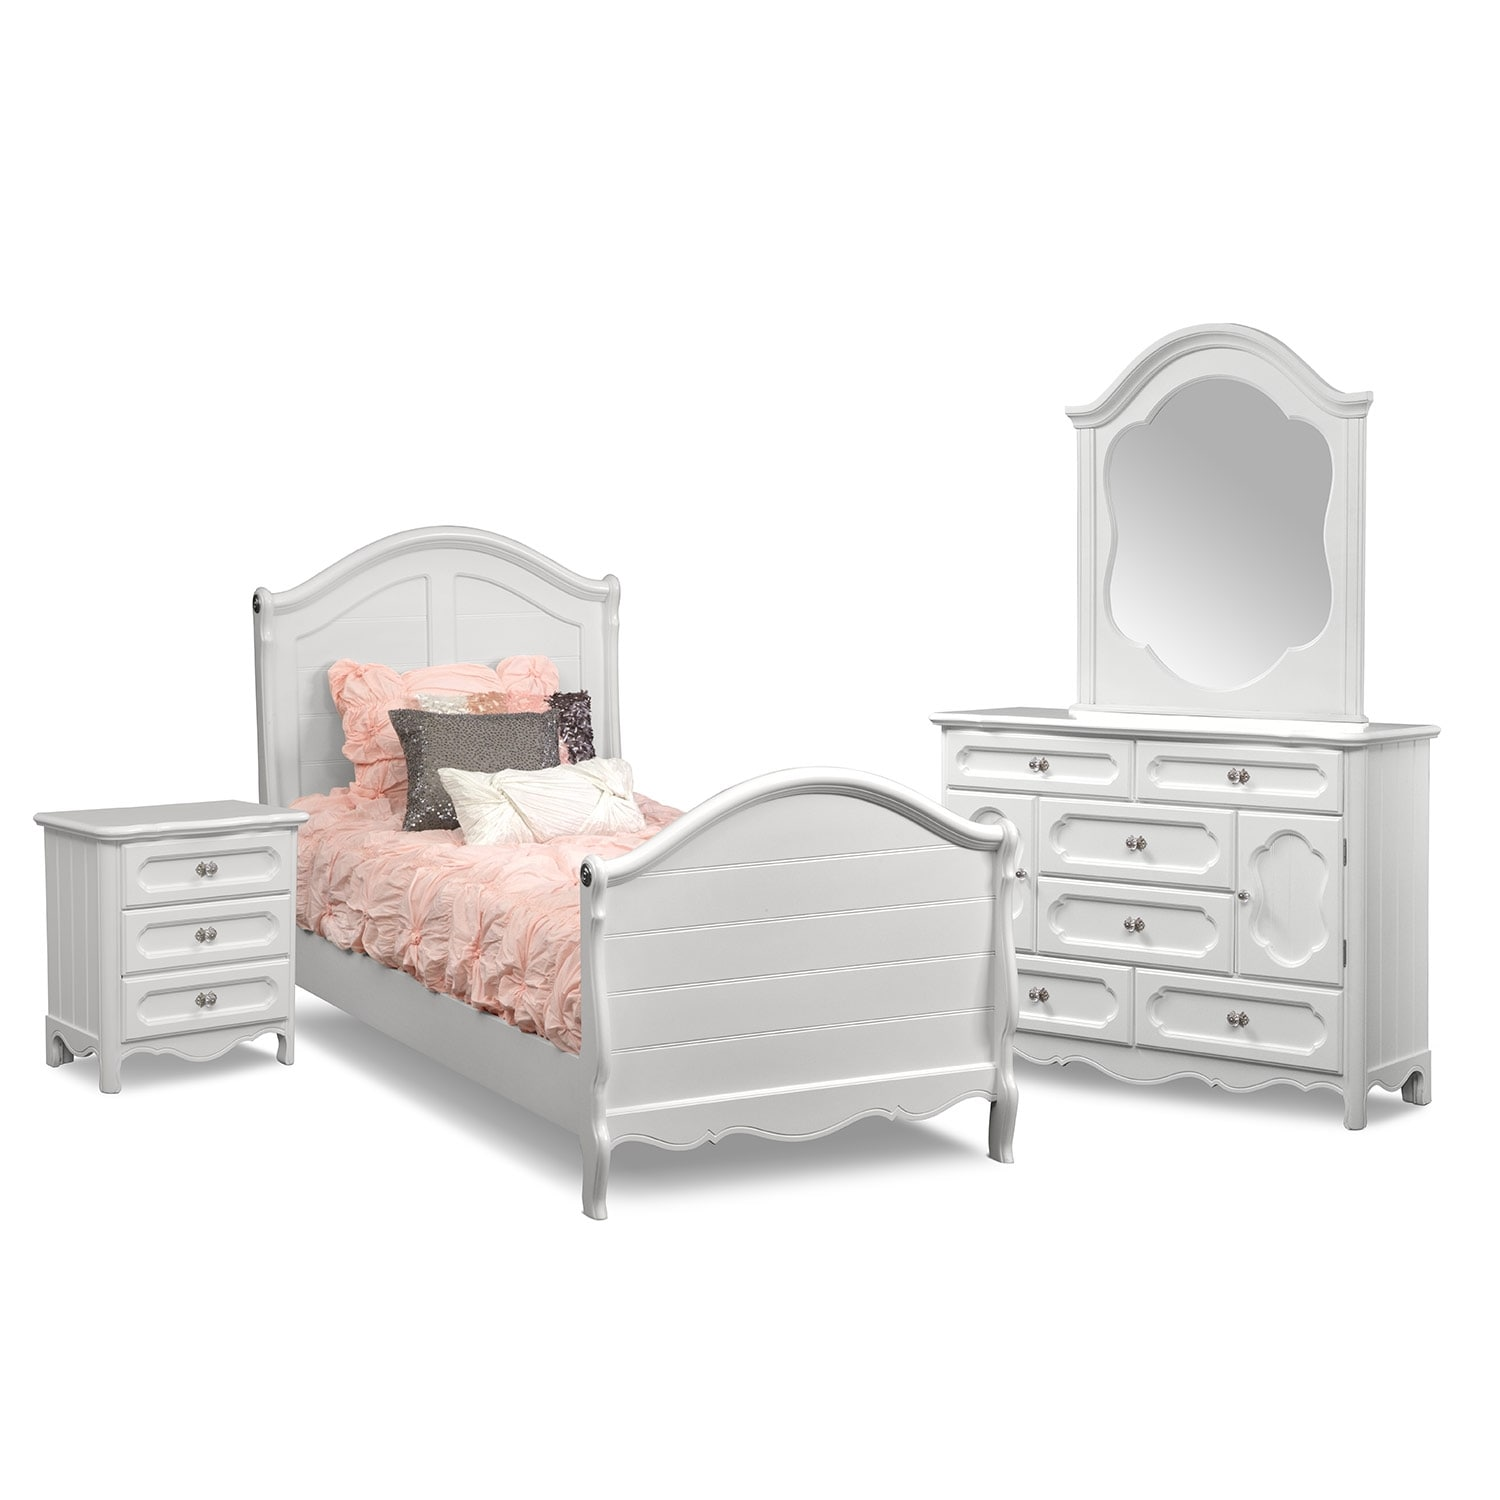 Carly 6 piece full bedroom set white american for American furniture bedroom furniture